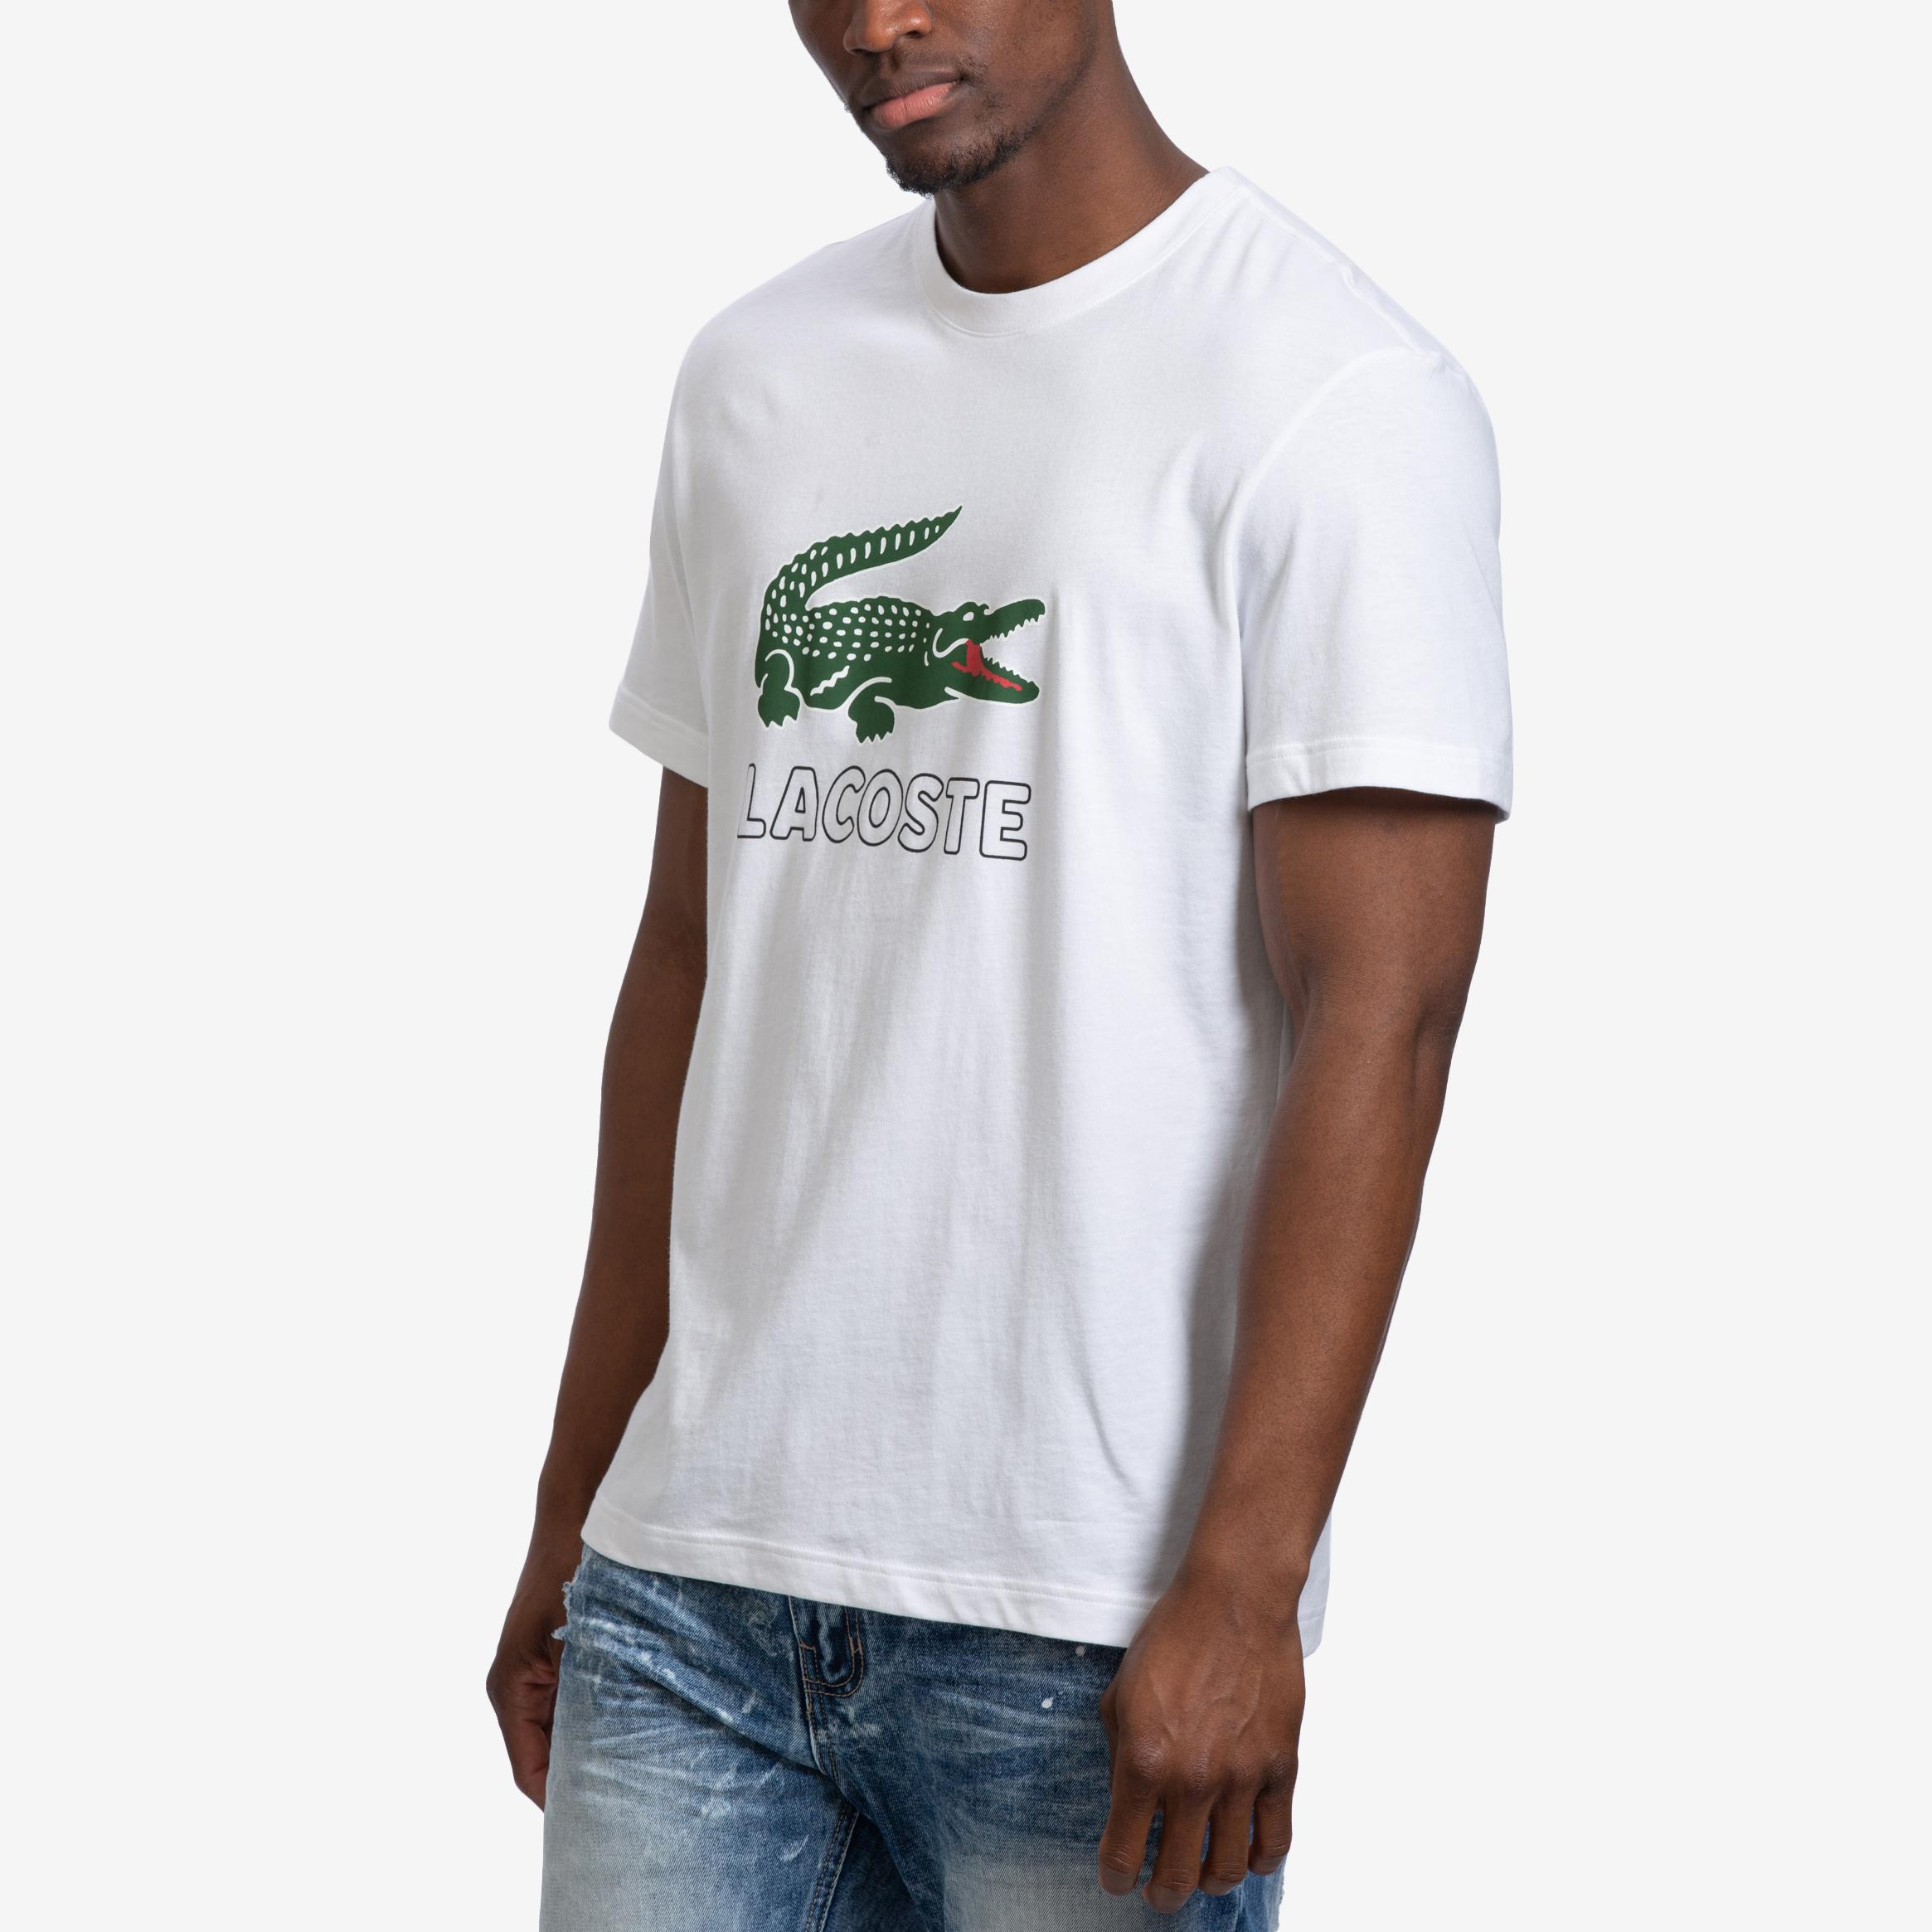 Graphic Croc T- Shirt